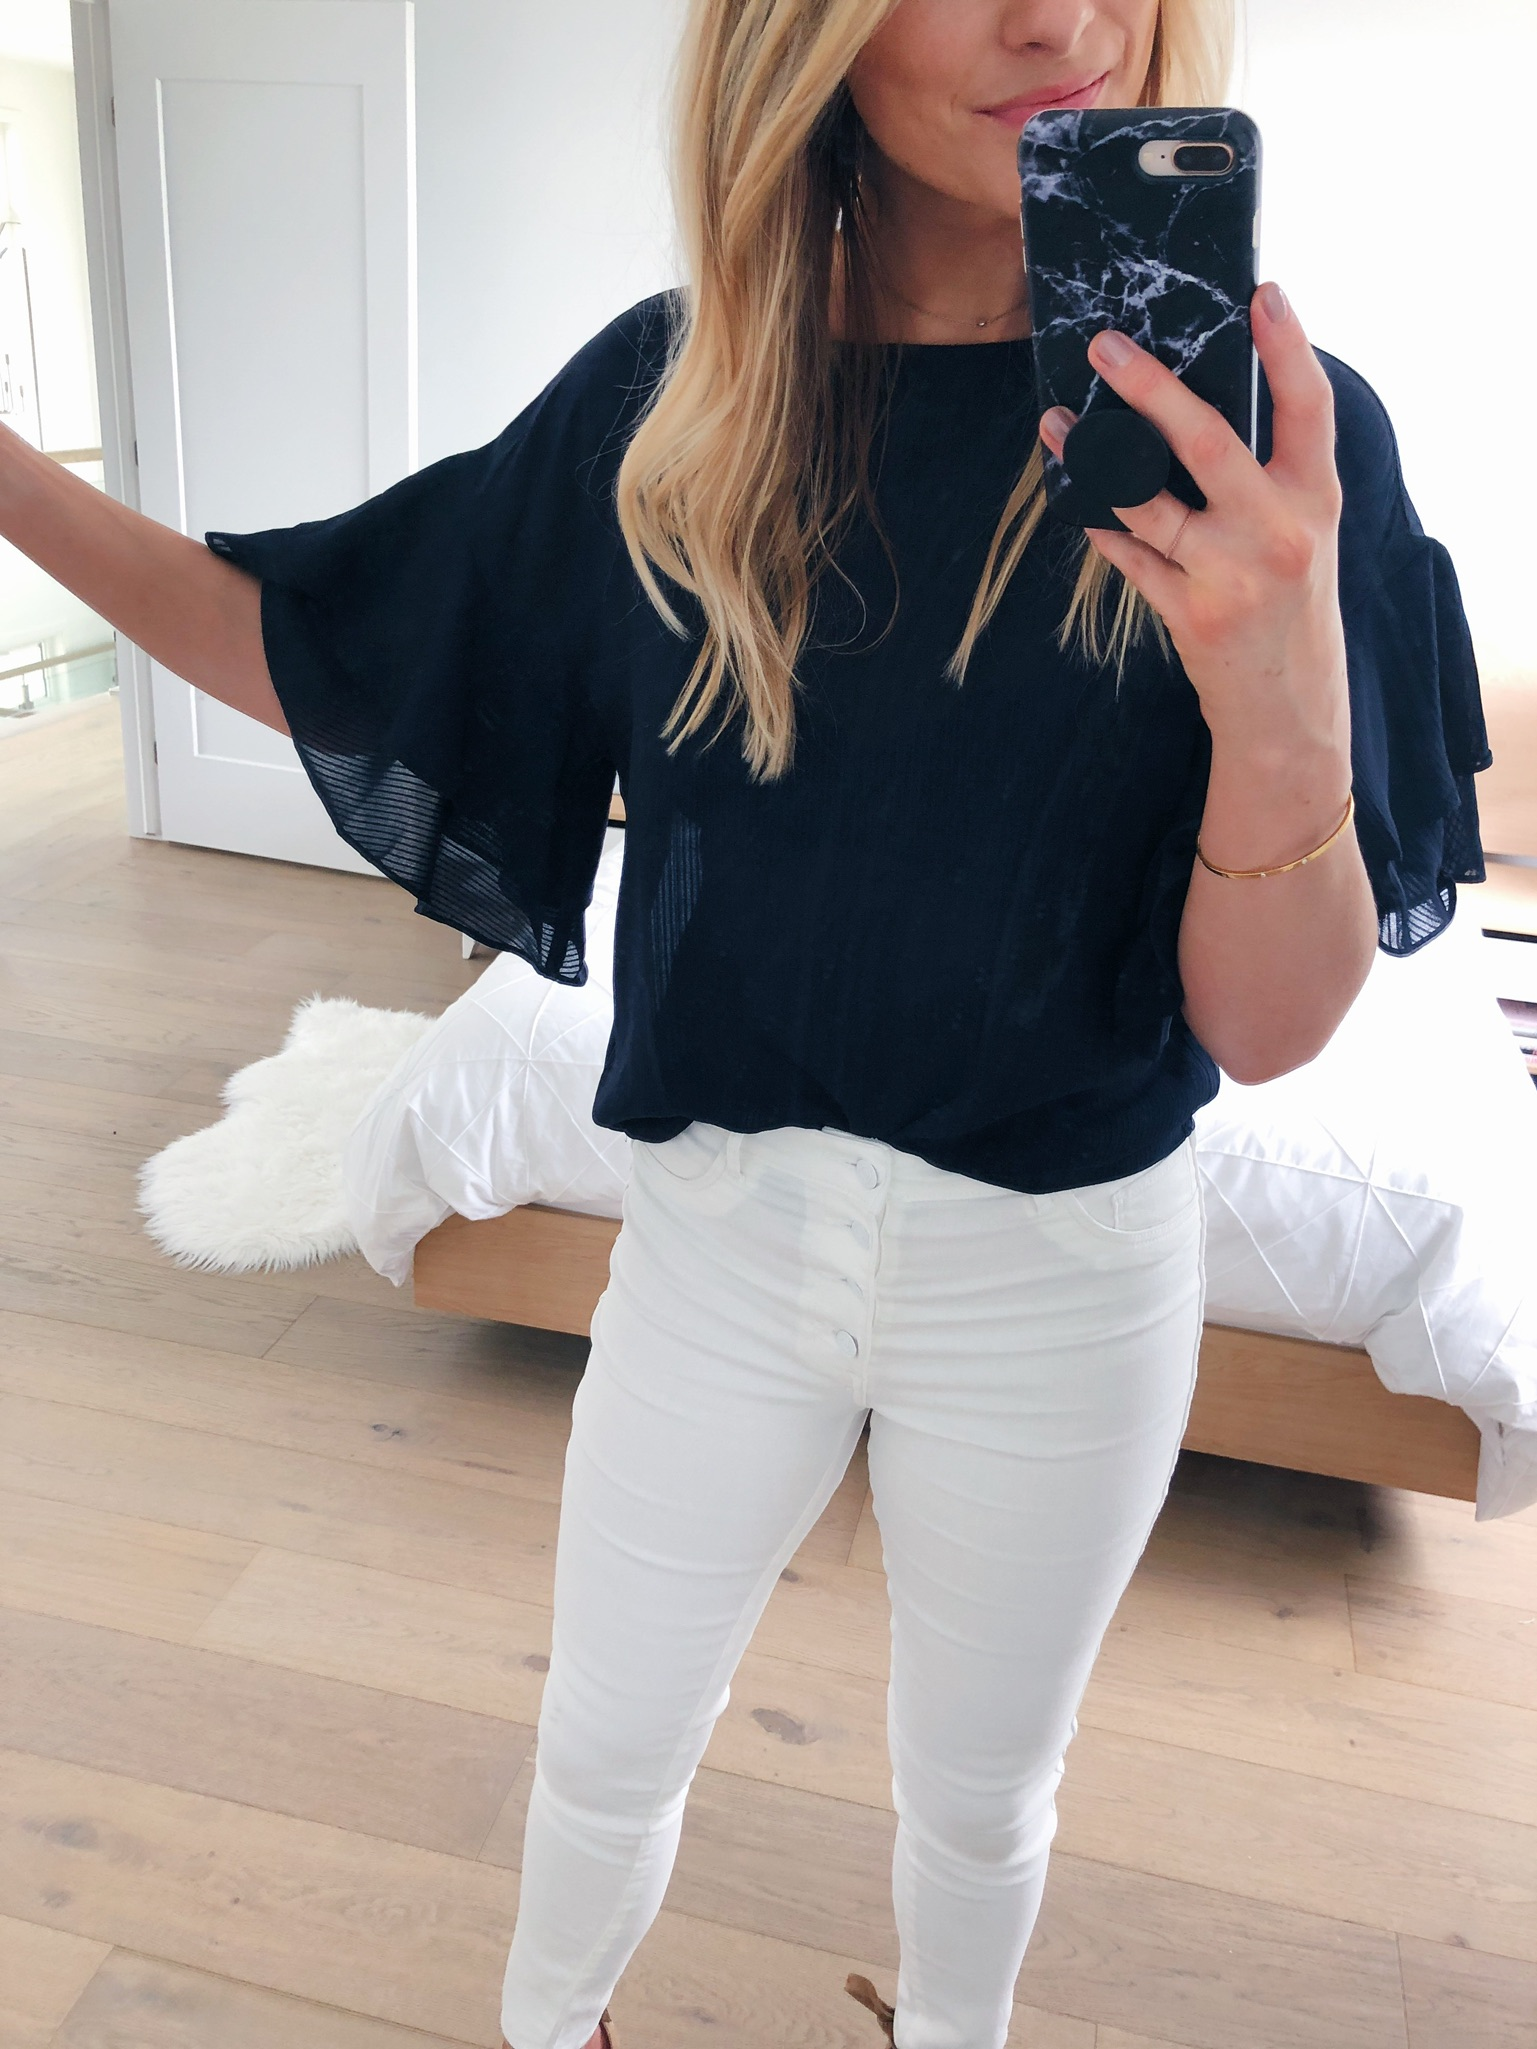 1 person, mirror selfie, blogger clothing try on session